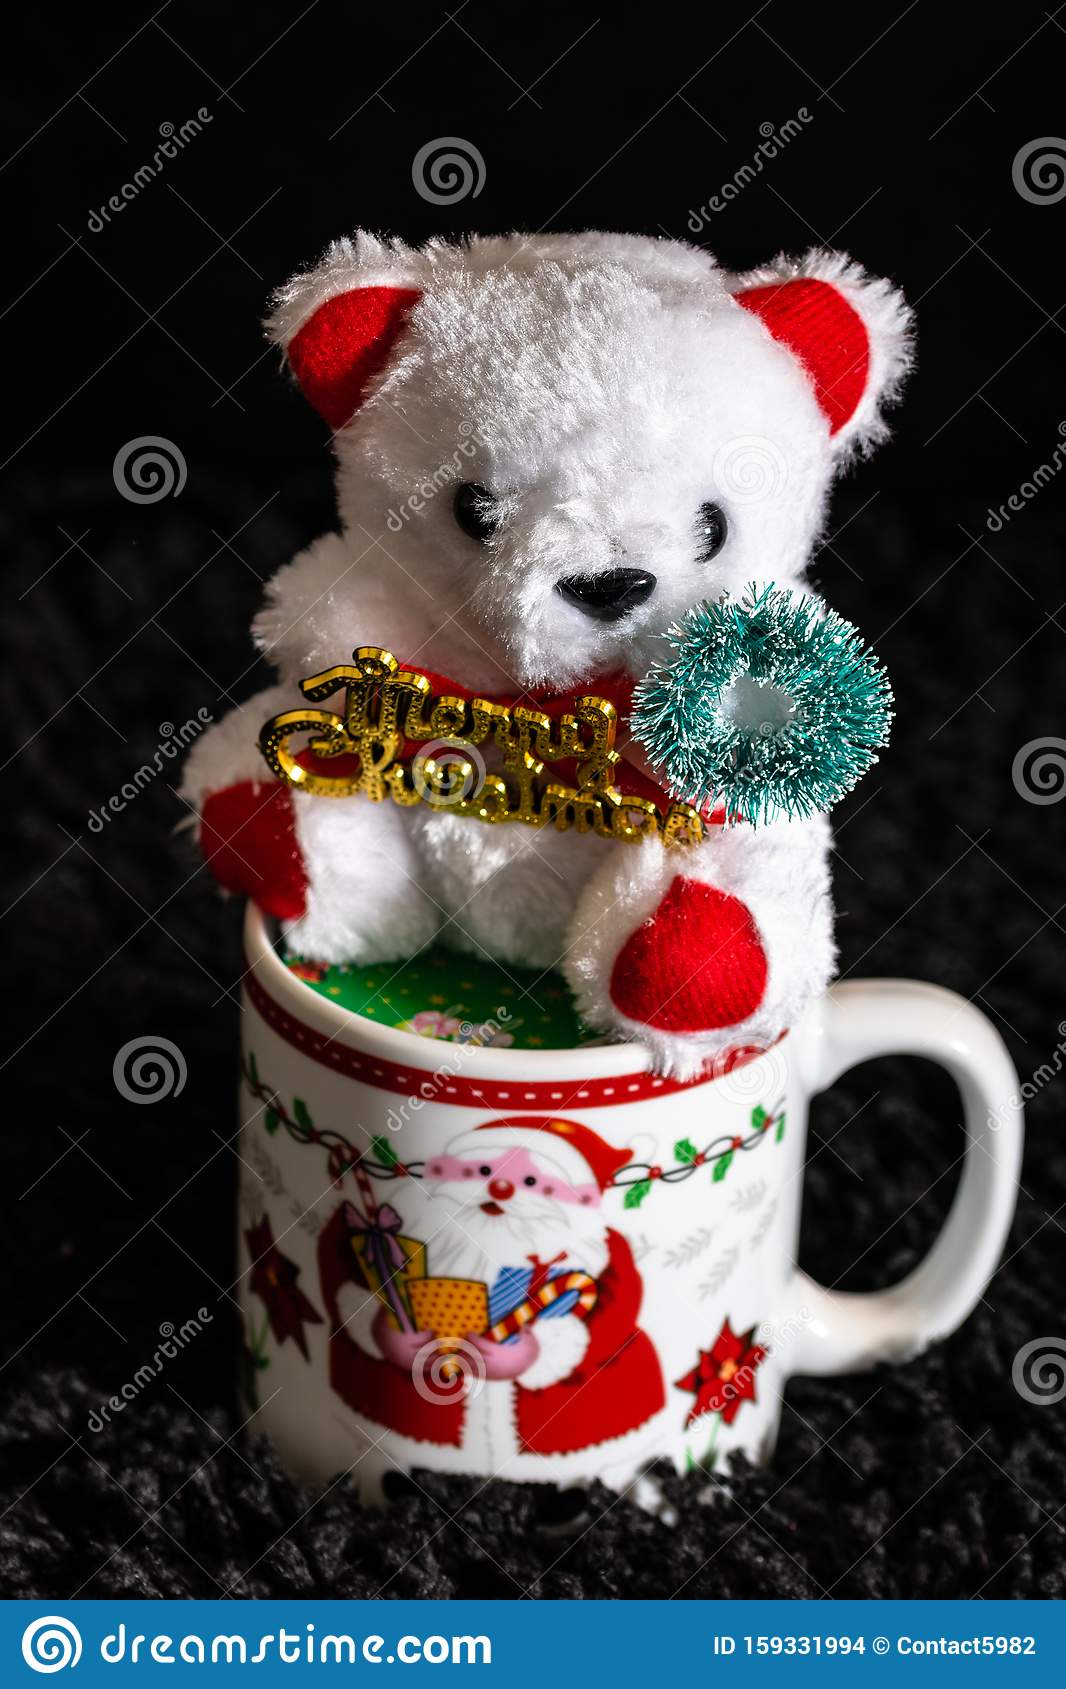 Photo Of Christmas Decorations Teddy Bear In A Christmas Mug Colorful Decorations Stock Photo Image Of Gold Decor 159331994